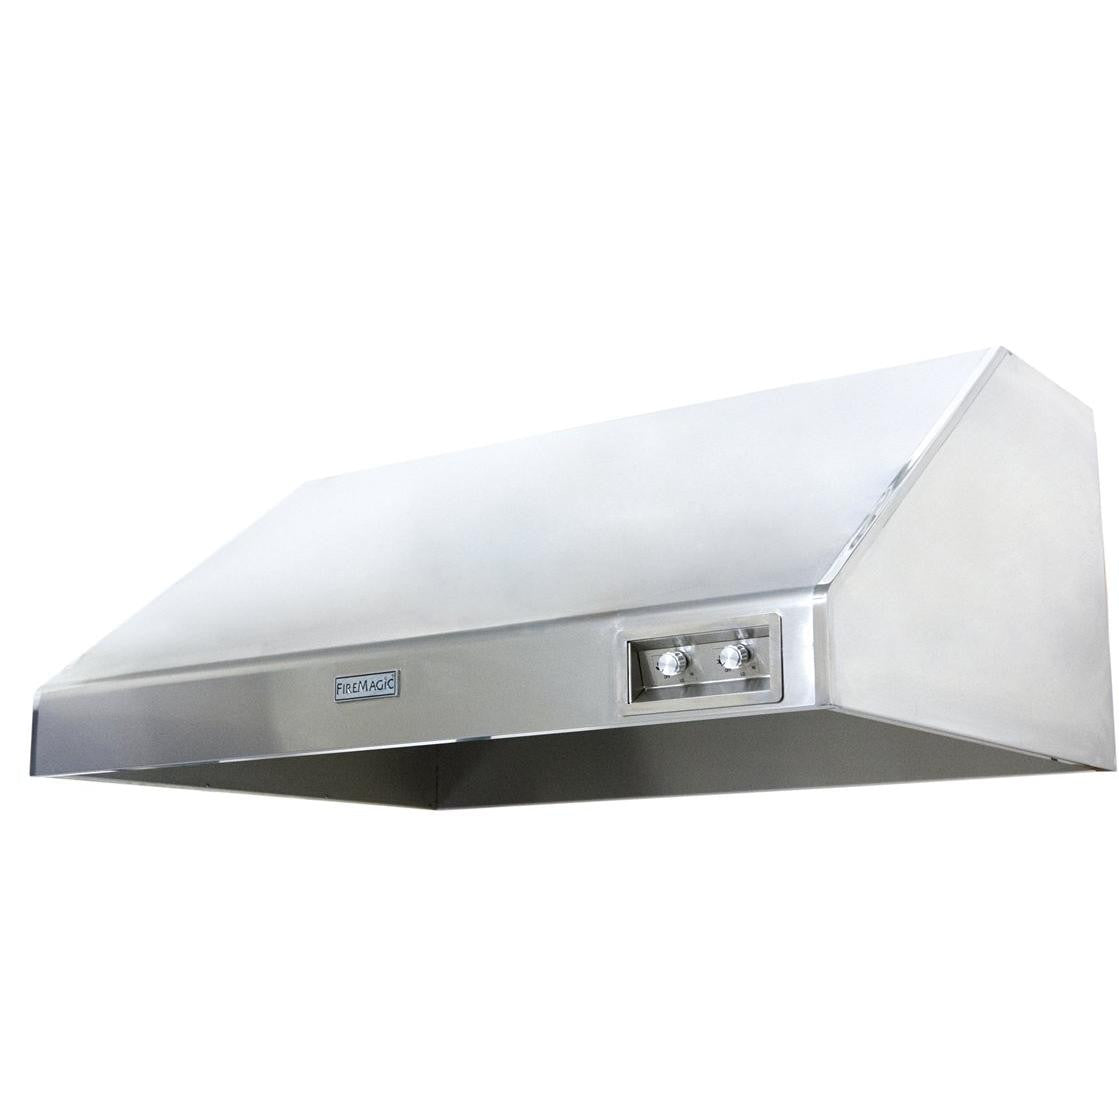 Fire Magic 48-Inch Stainless Steel Outdoor Vent Hood - 1200 CFM 48-VH-6